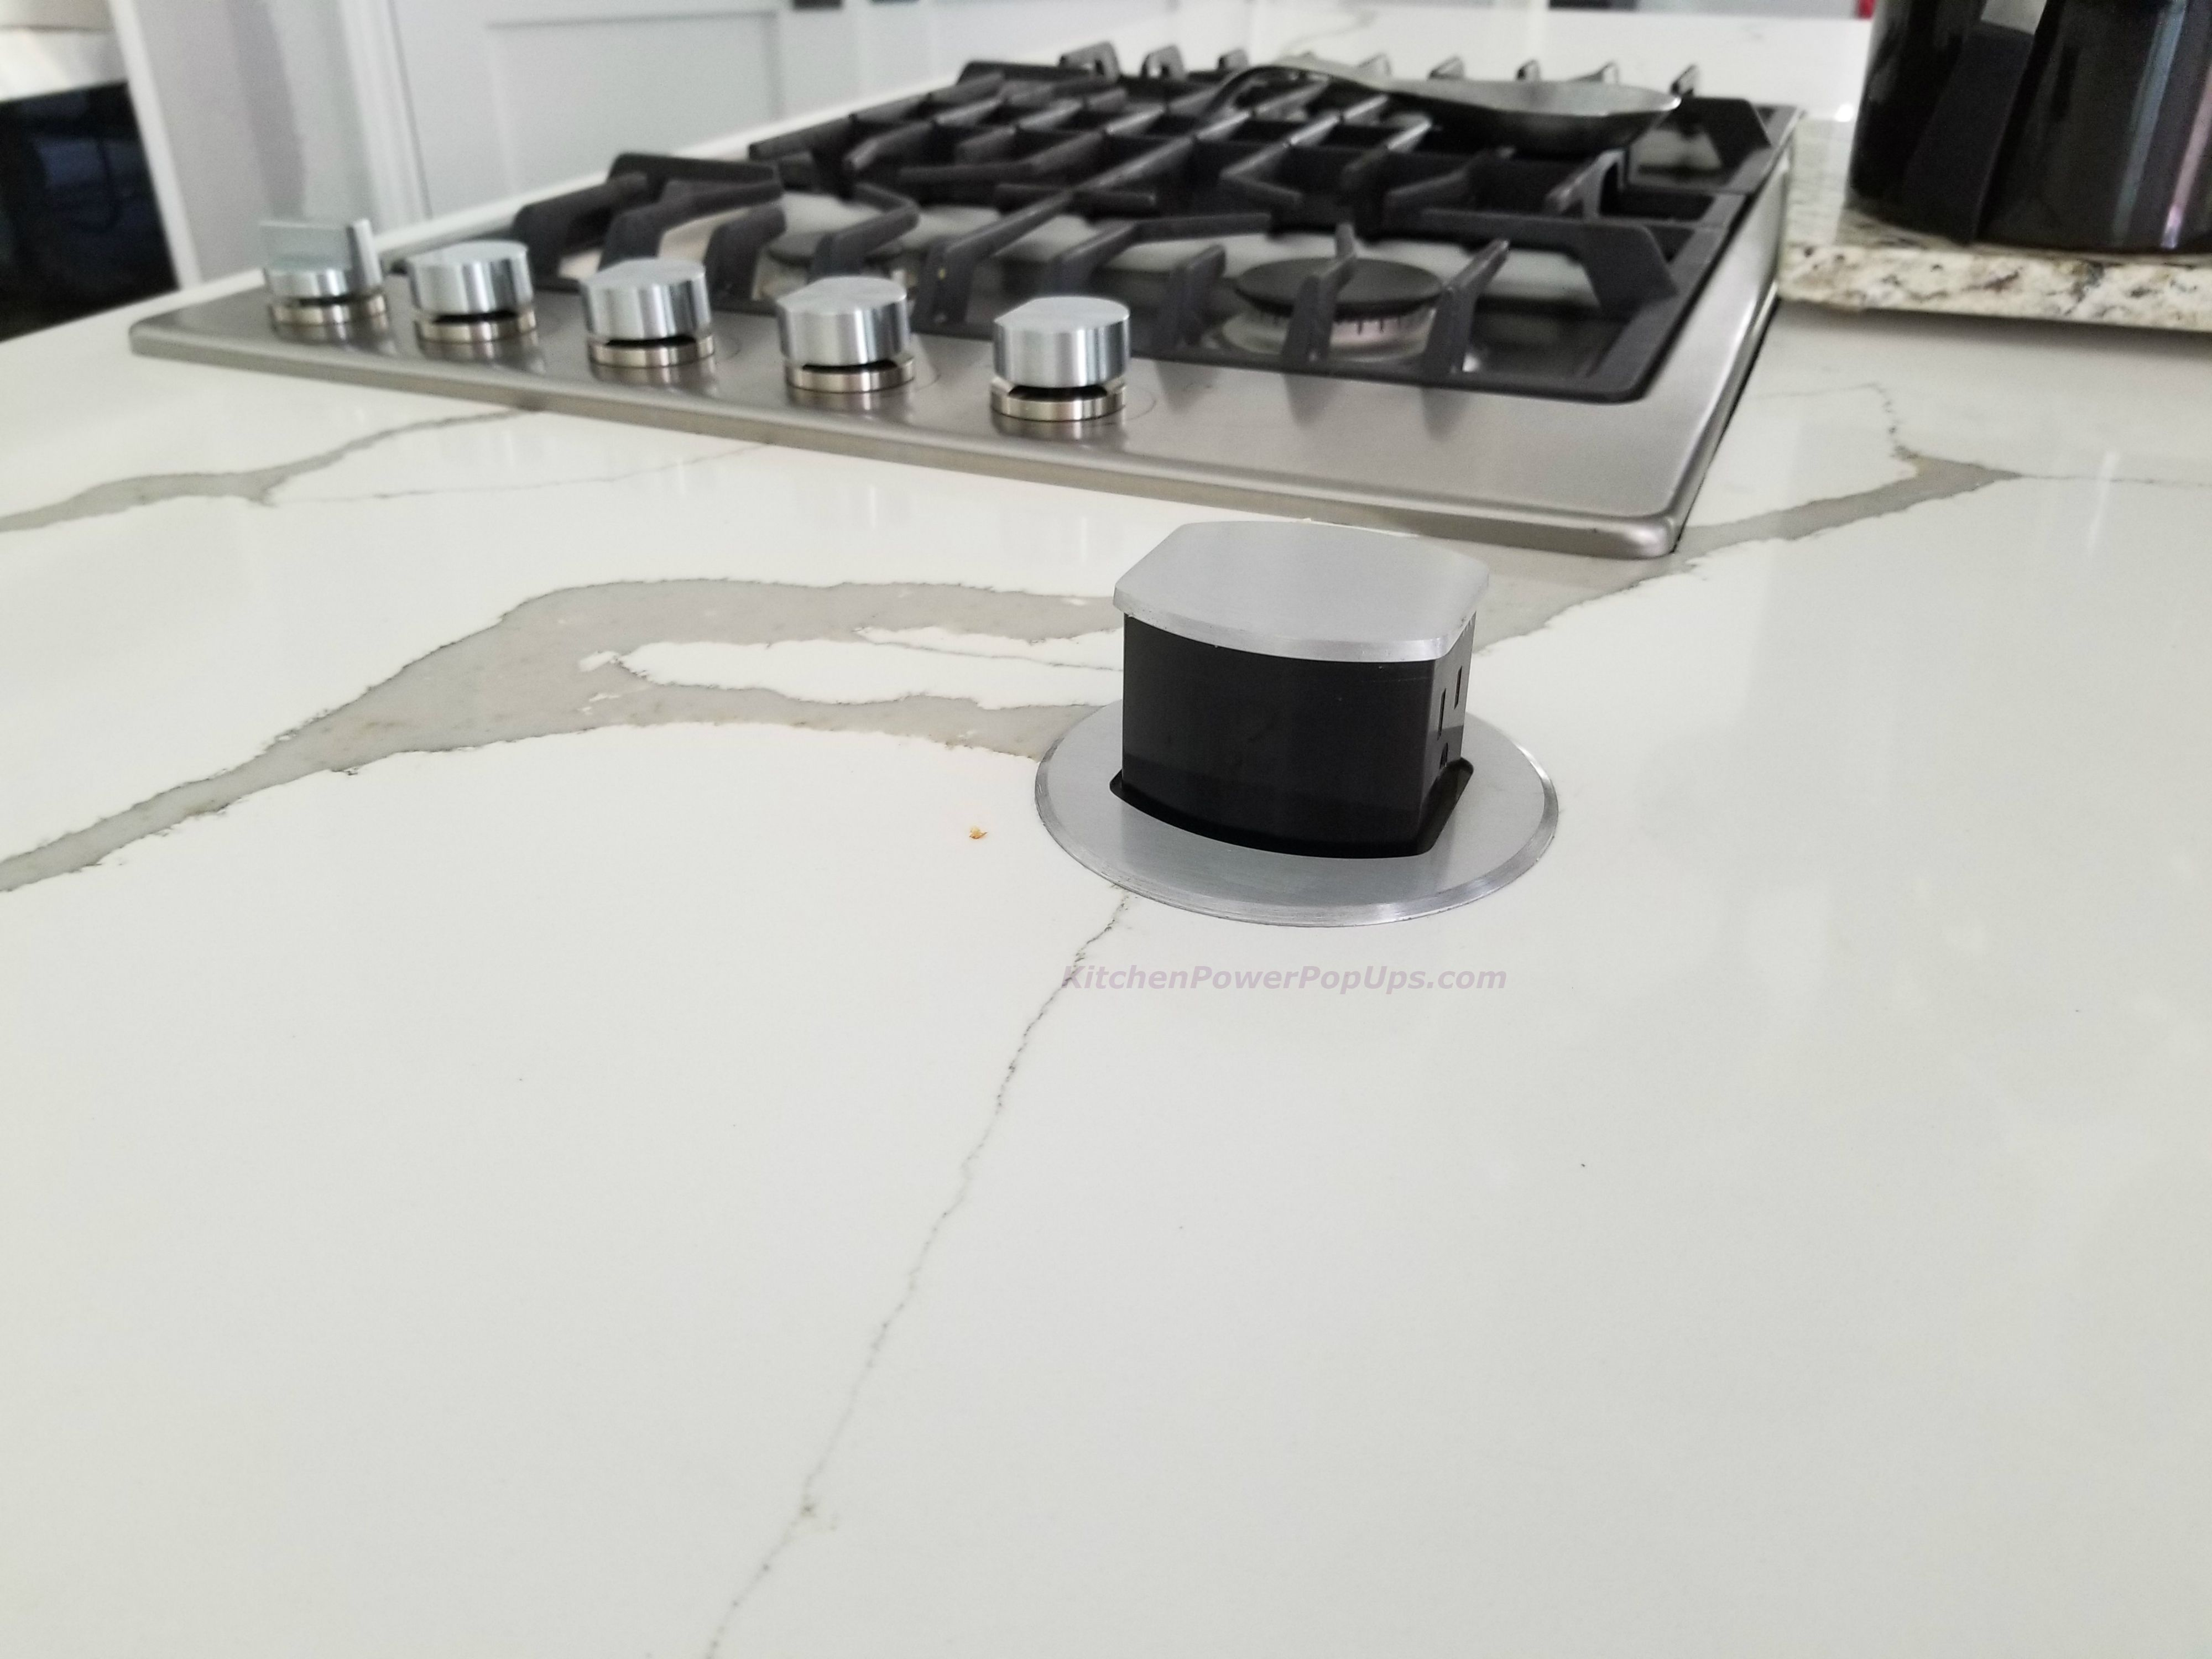 Countertop 2 Sided Spill Proof Pop Up 15a Outlet Surface Mount Aluminum Kitchen Outlets Pop Up Outlets Countertops